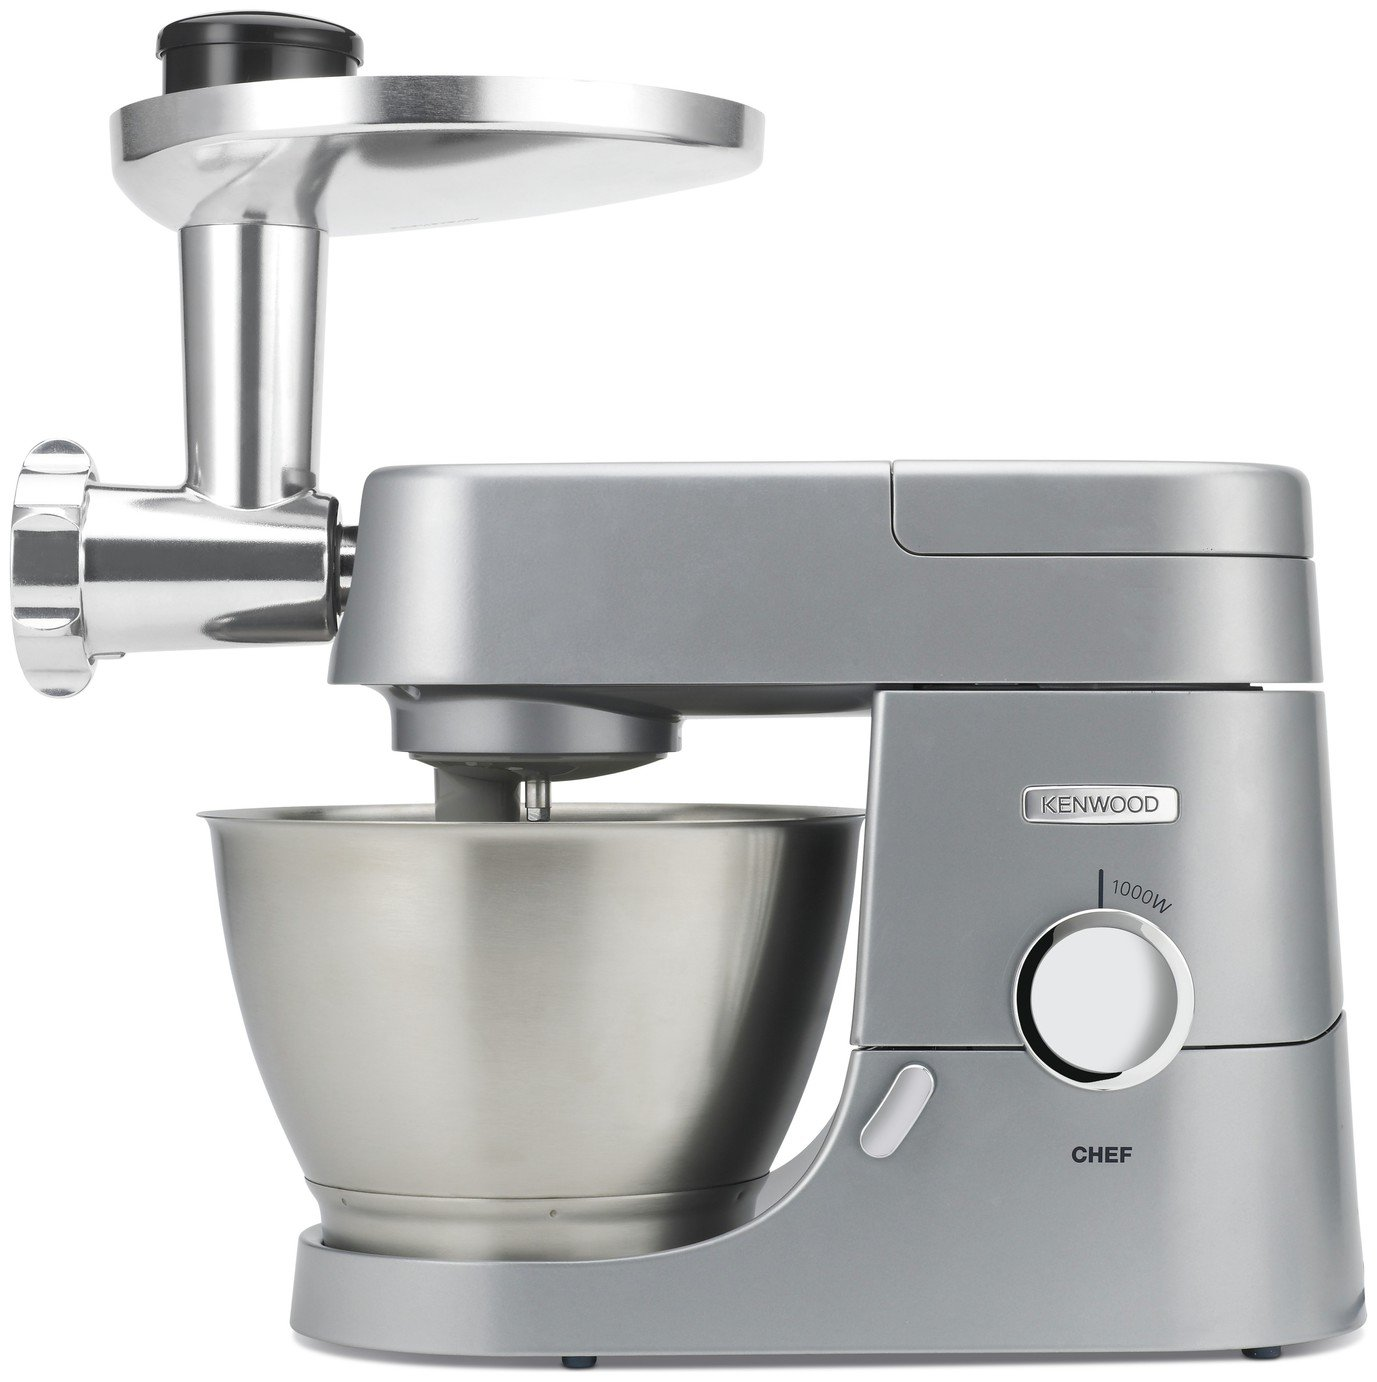 kenwood-kax95ome-food-mincer